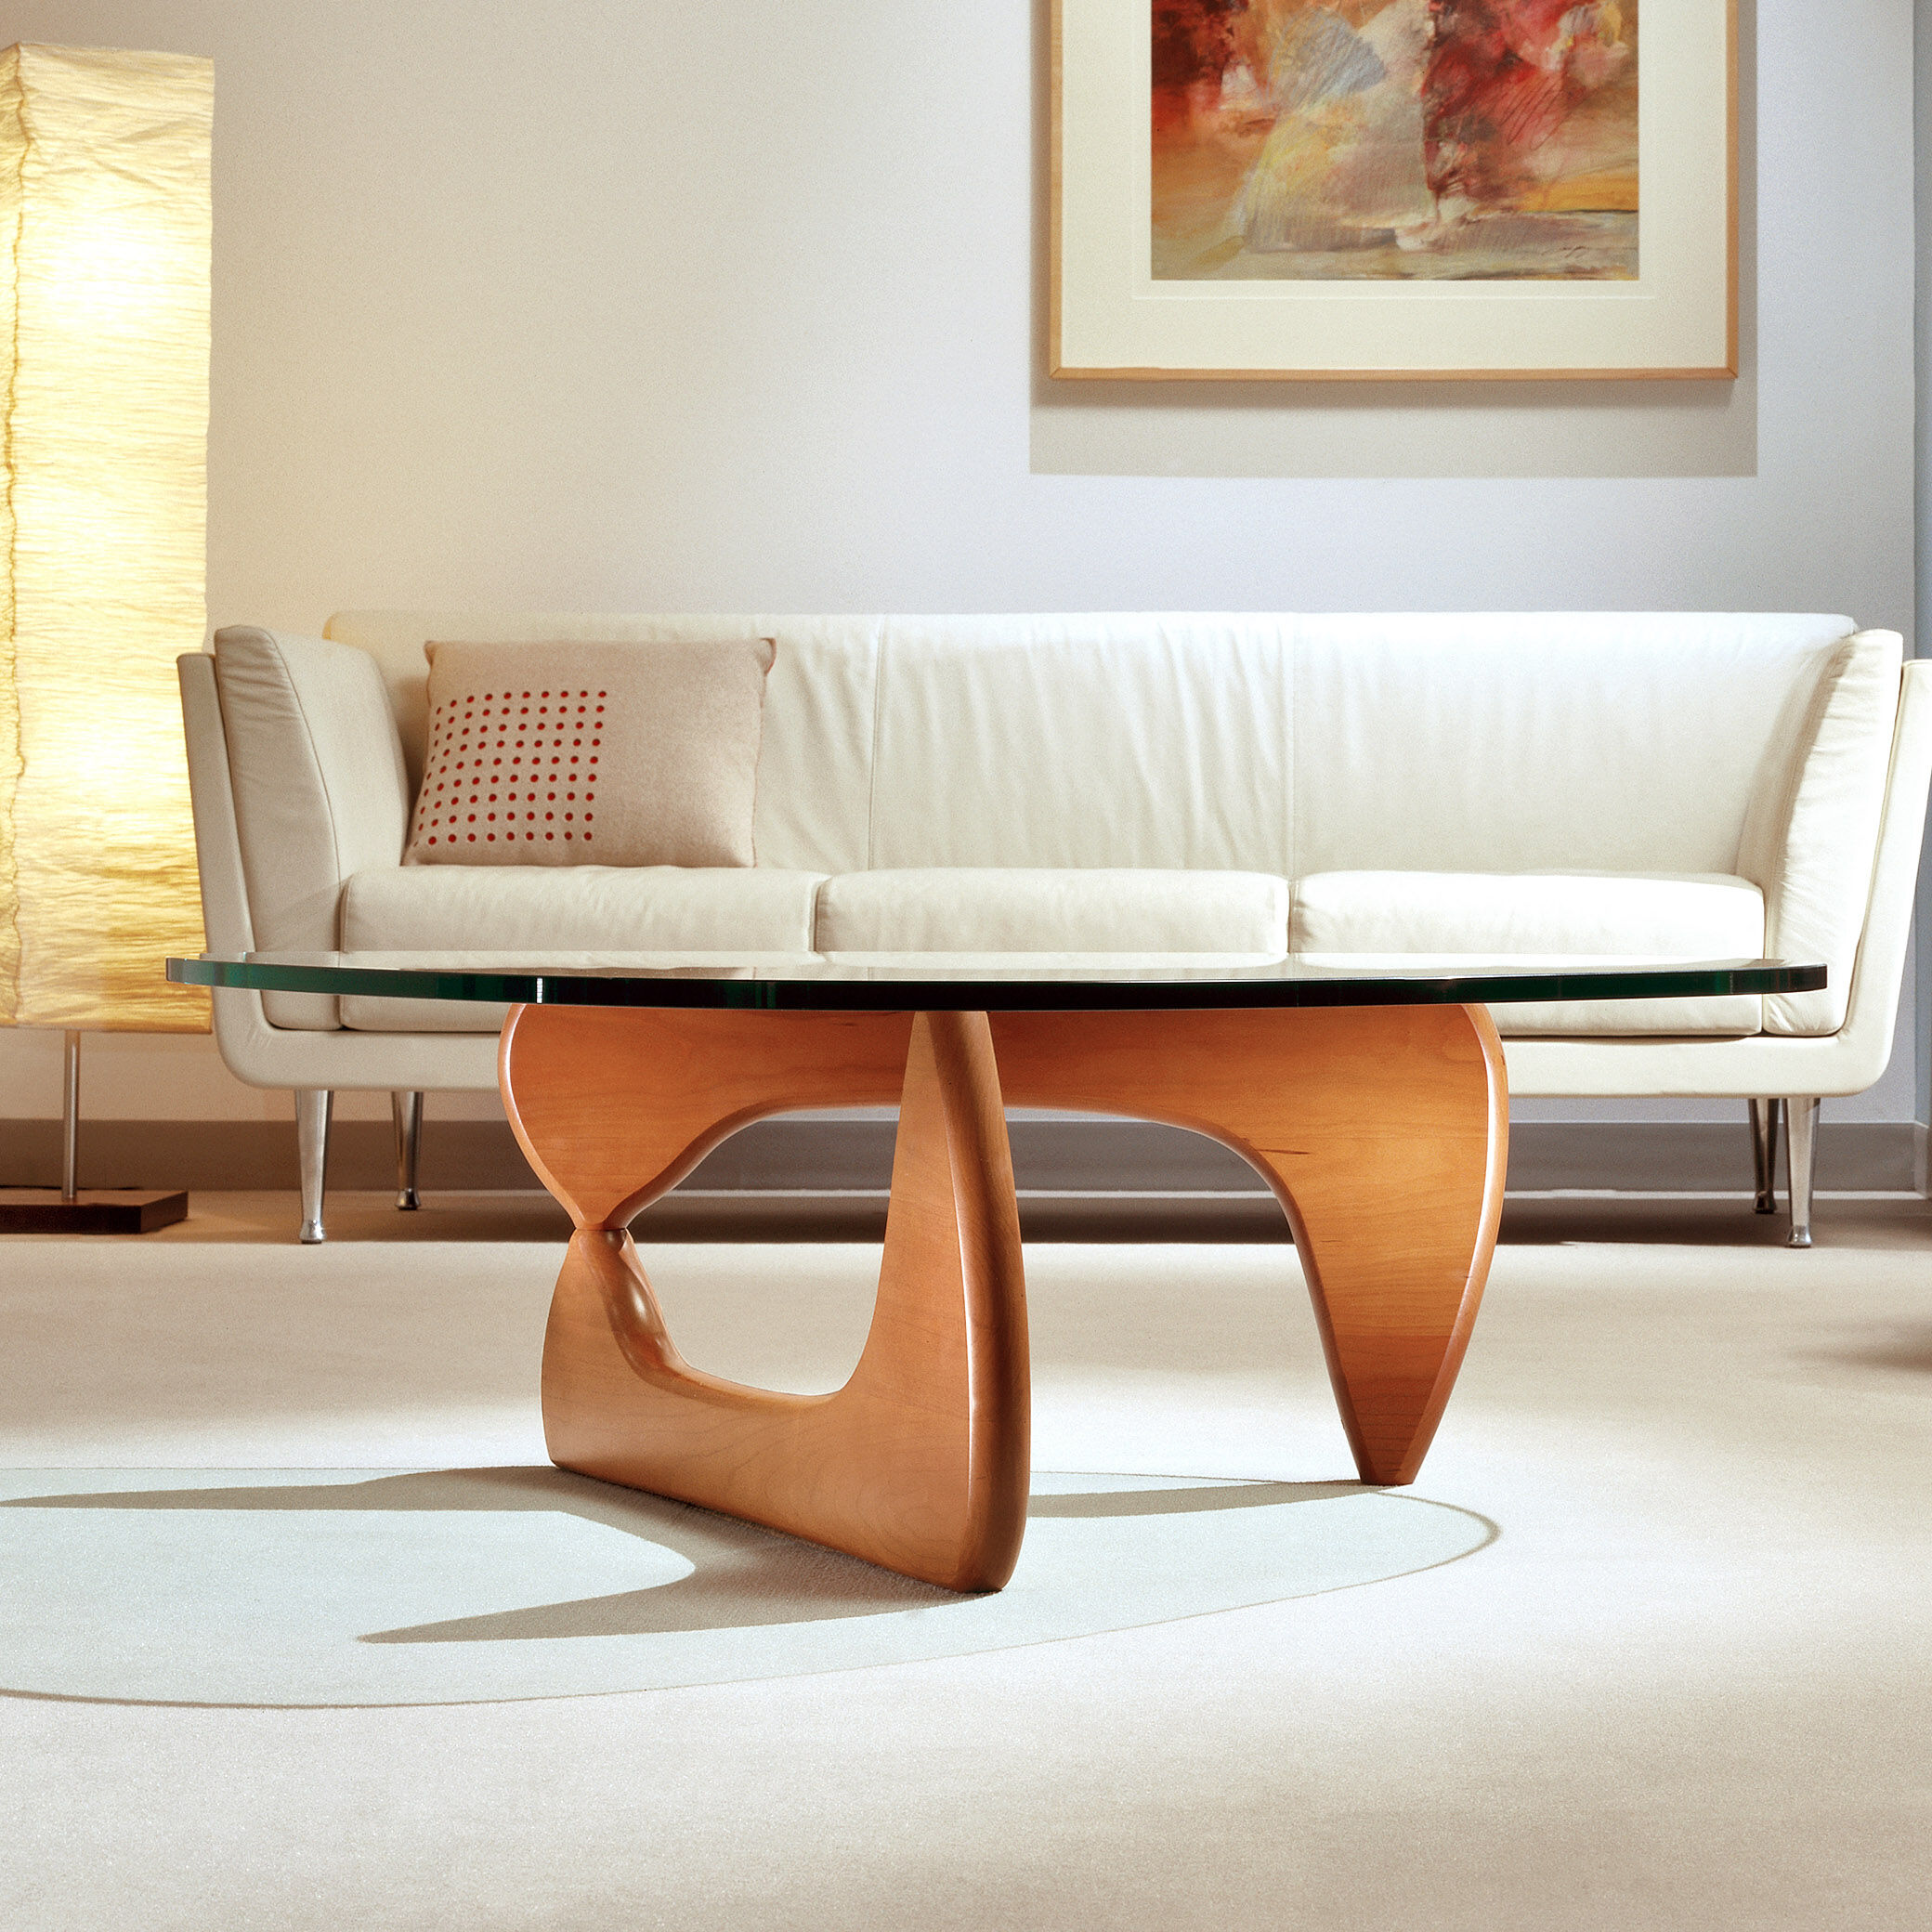 Walnut Base Noguchi Coffee Table MoMA Design Store